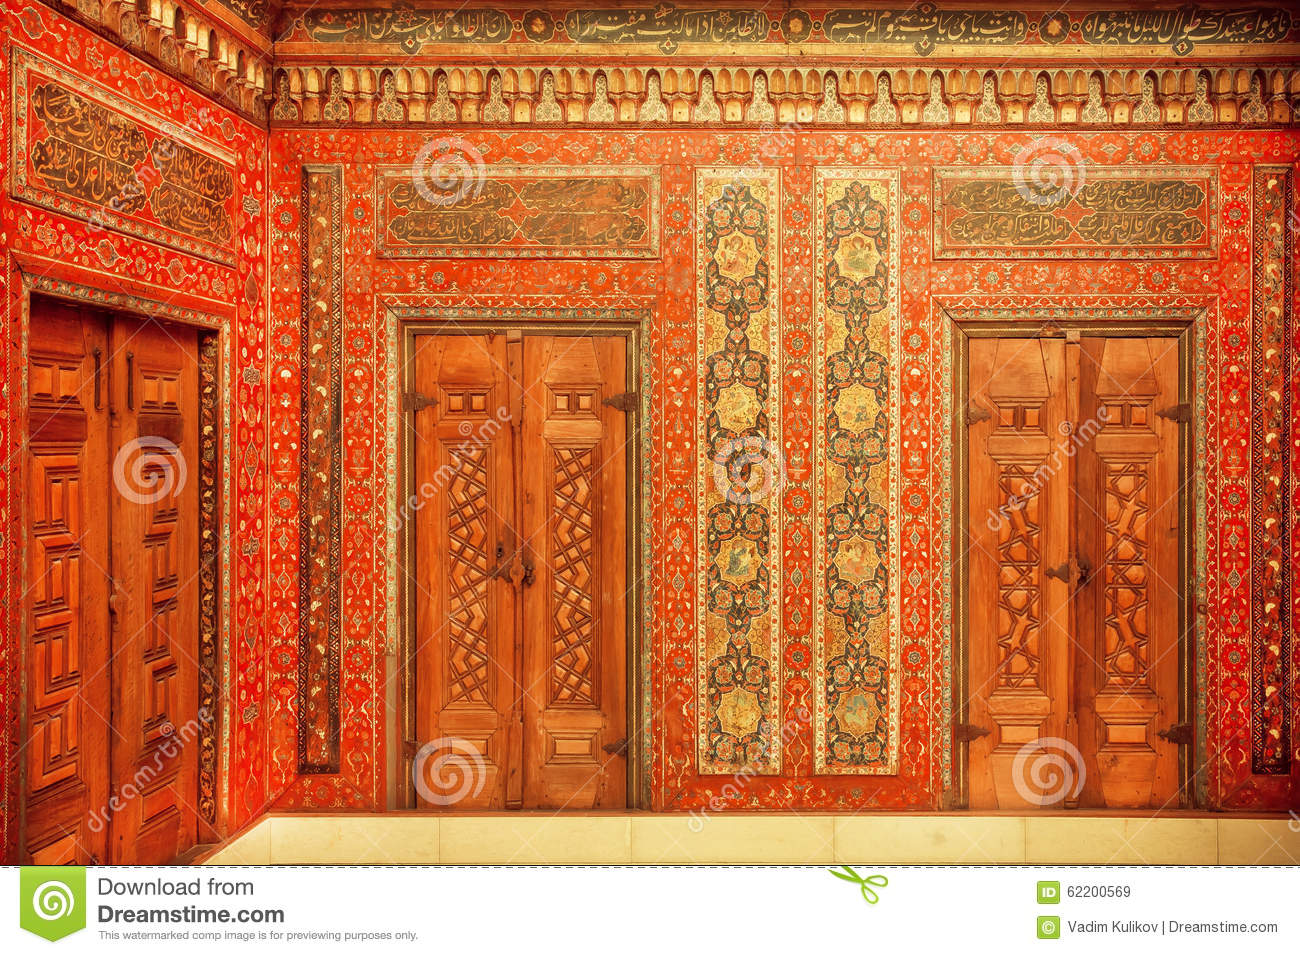 Editorial Stock Photo & Calligraphy And Paintings On The Doors Of 17th Century Aleppo Room ... pezcame.com